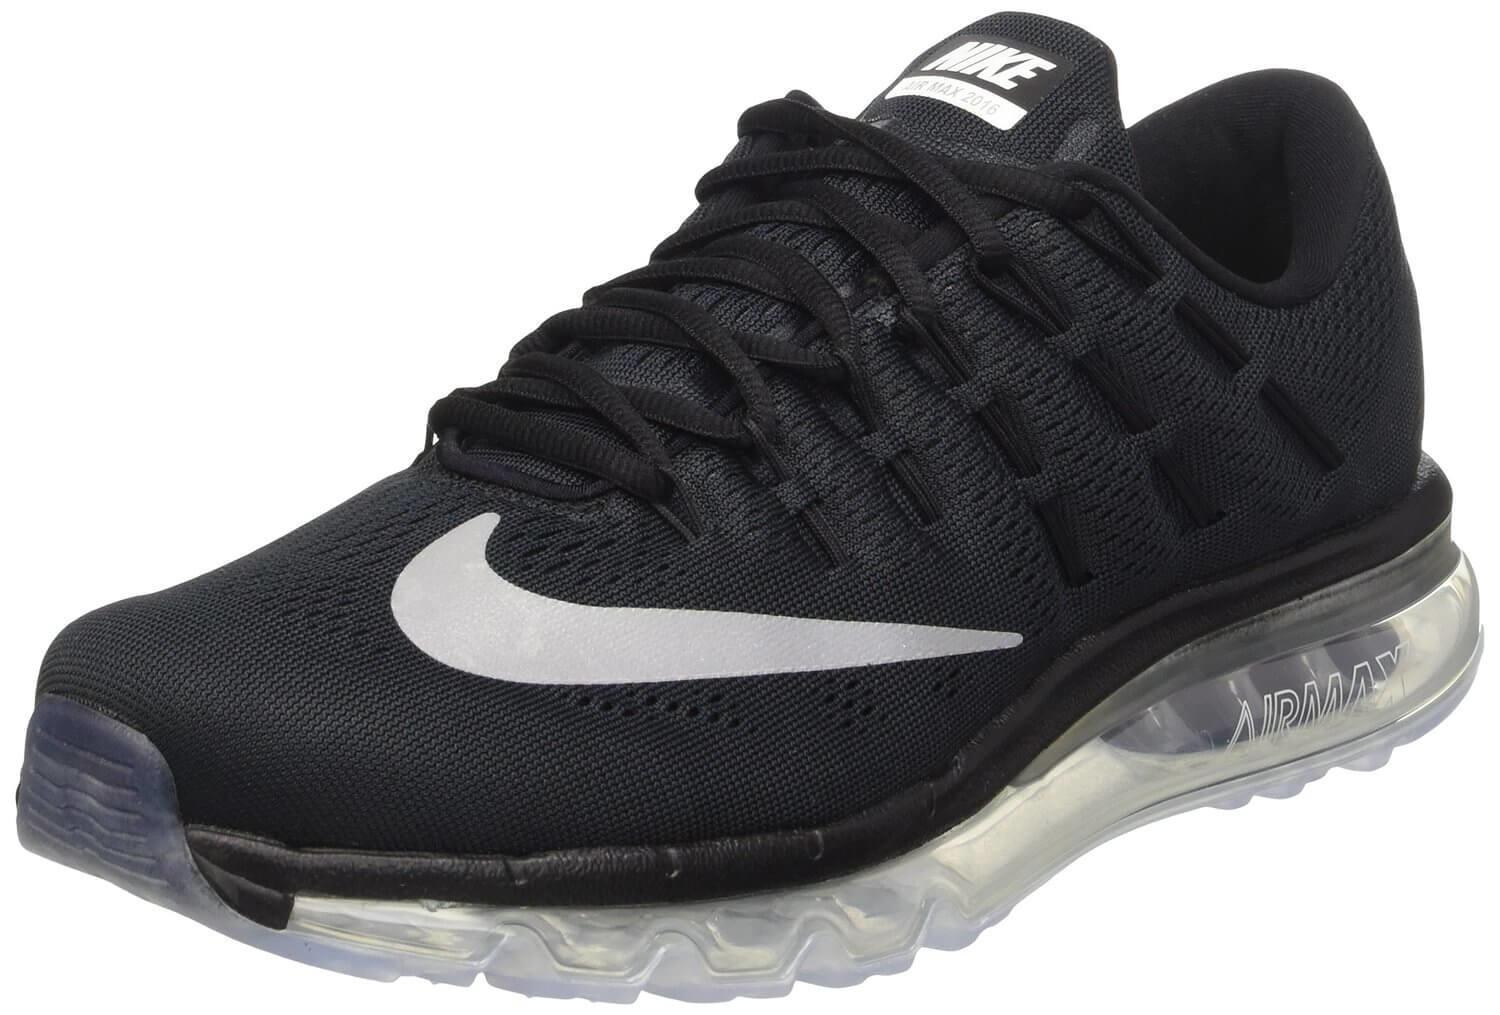 timeless design d89a8 c5464 With a simplistic design, the Nike Air Max 2016 is still a very stylish  shoe ...